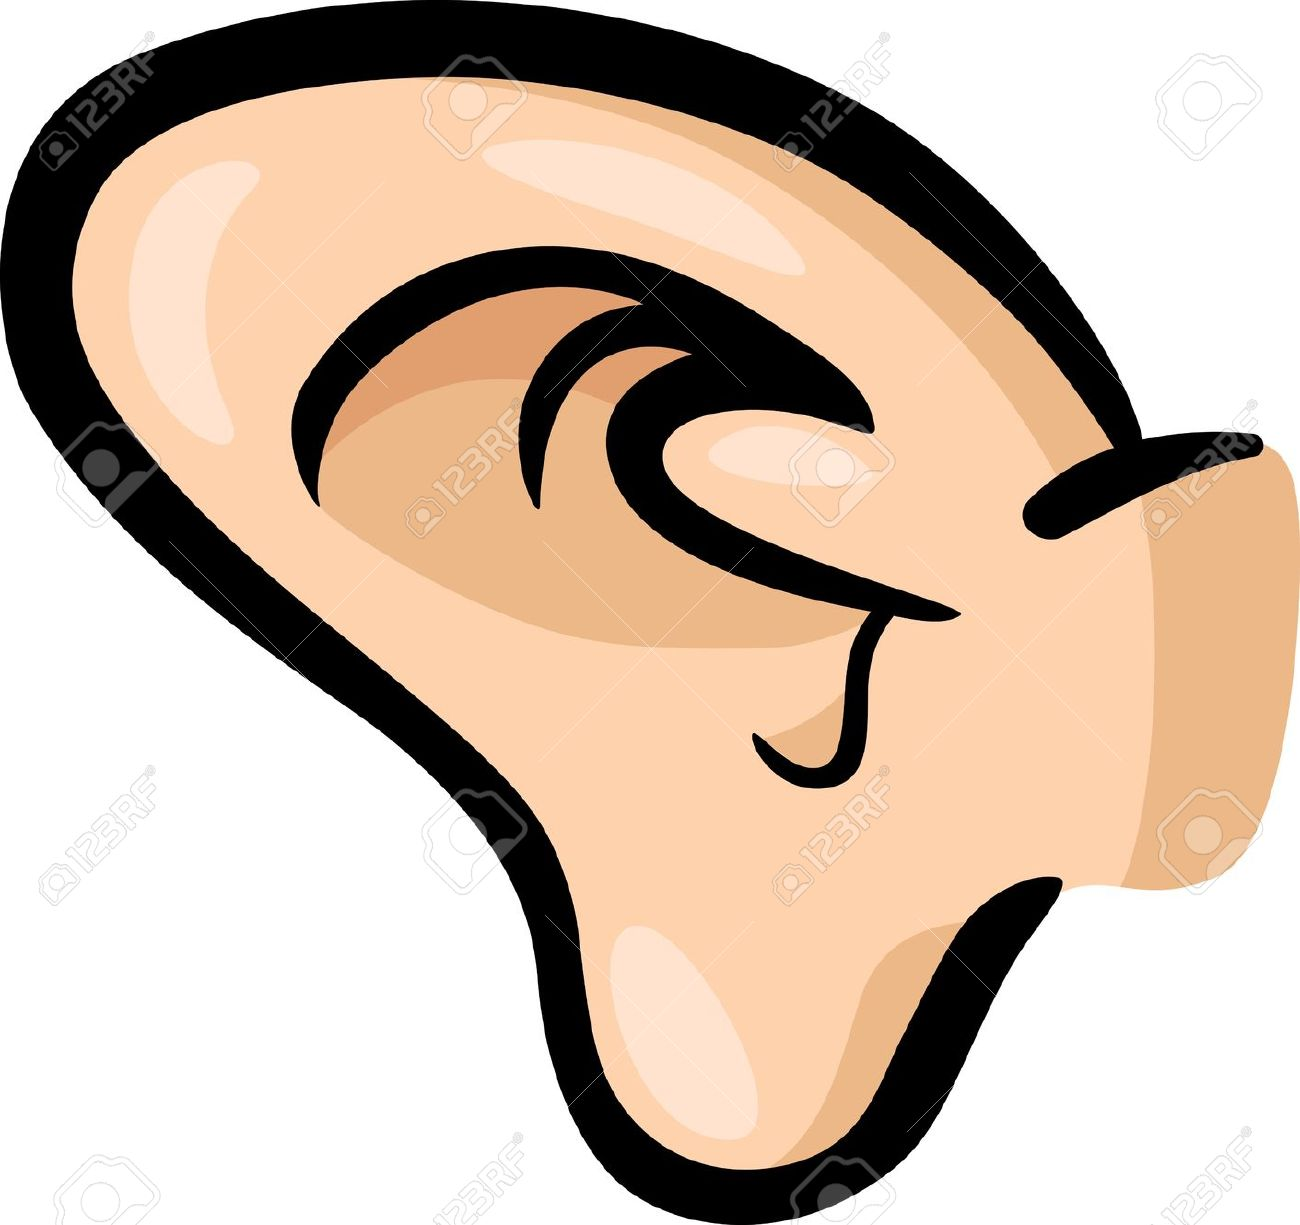 Image Of The Ear Clipart